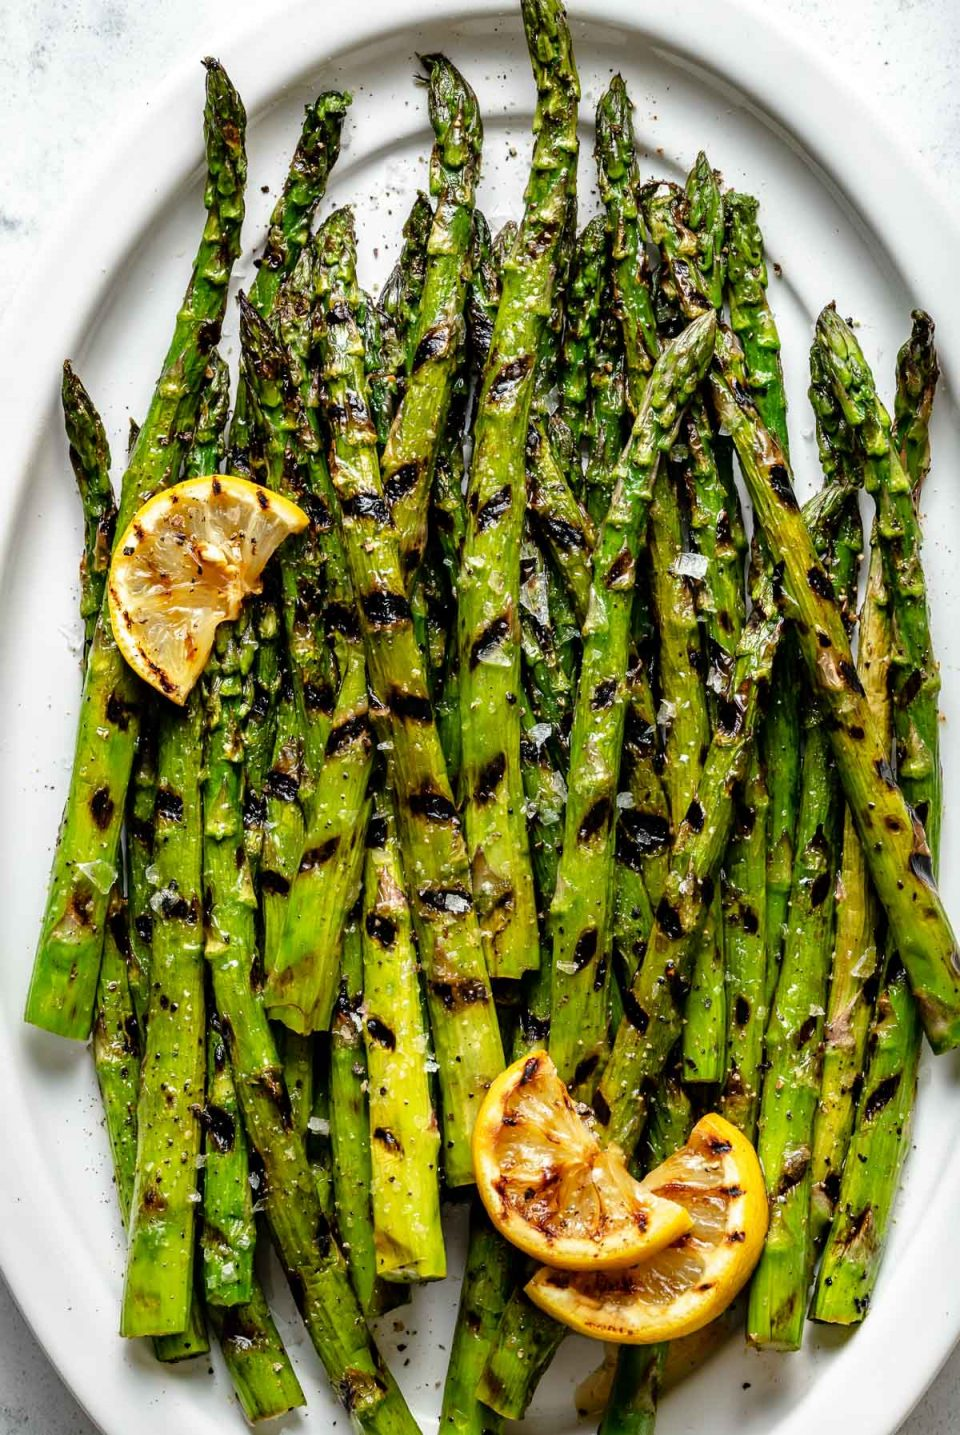 Close up of grilled asparagus spears with char marks arranged on a white ceramic platter. The grilled asparagus is garnished with kosher salt, ground black pepper, & grilled lemons. The platter sits on top of a white & gray marble surface.